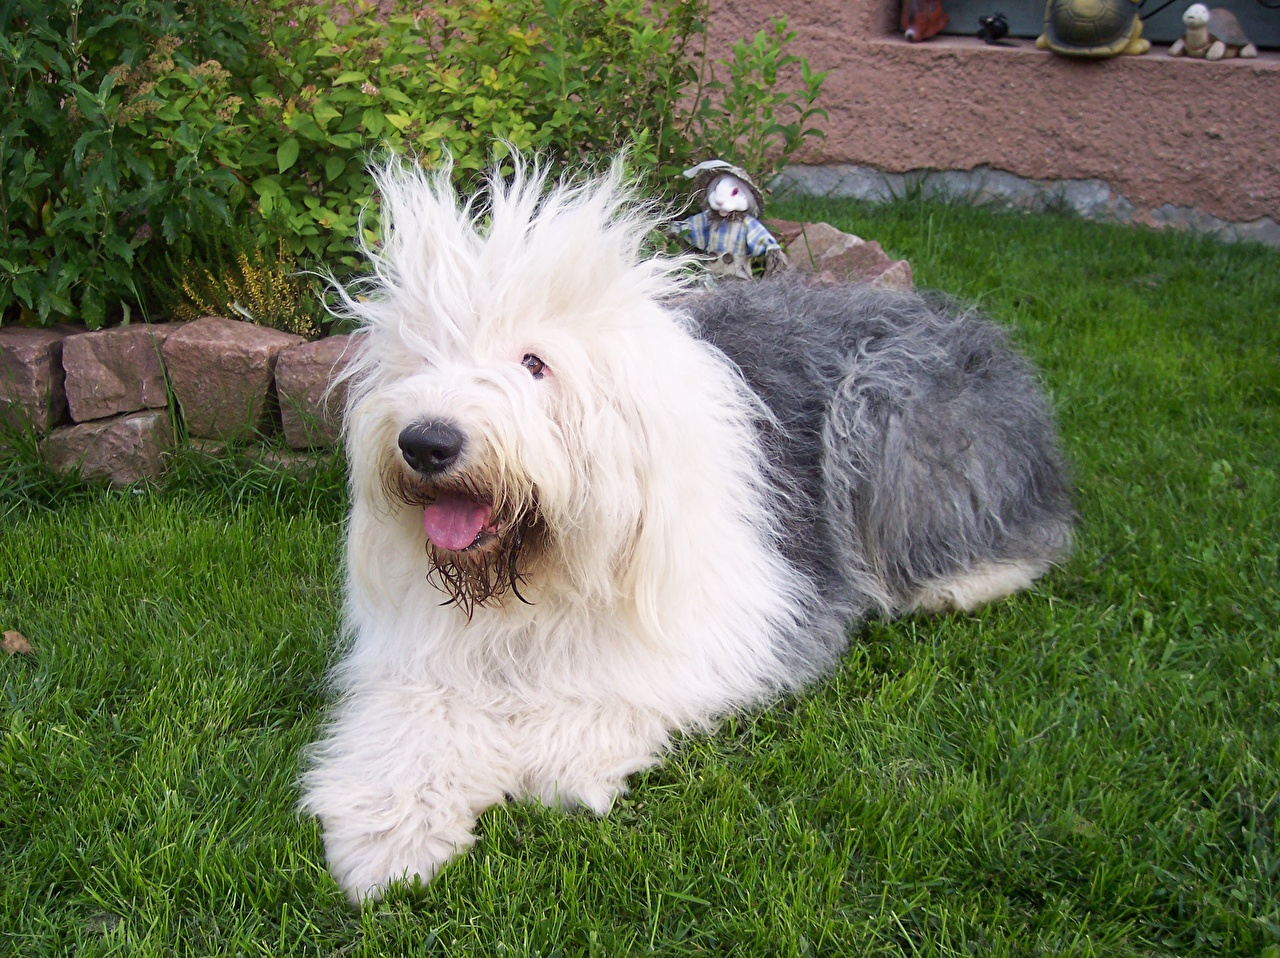 Picture Old English Sheepdog Dogs Grass Animals dog animal